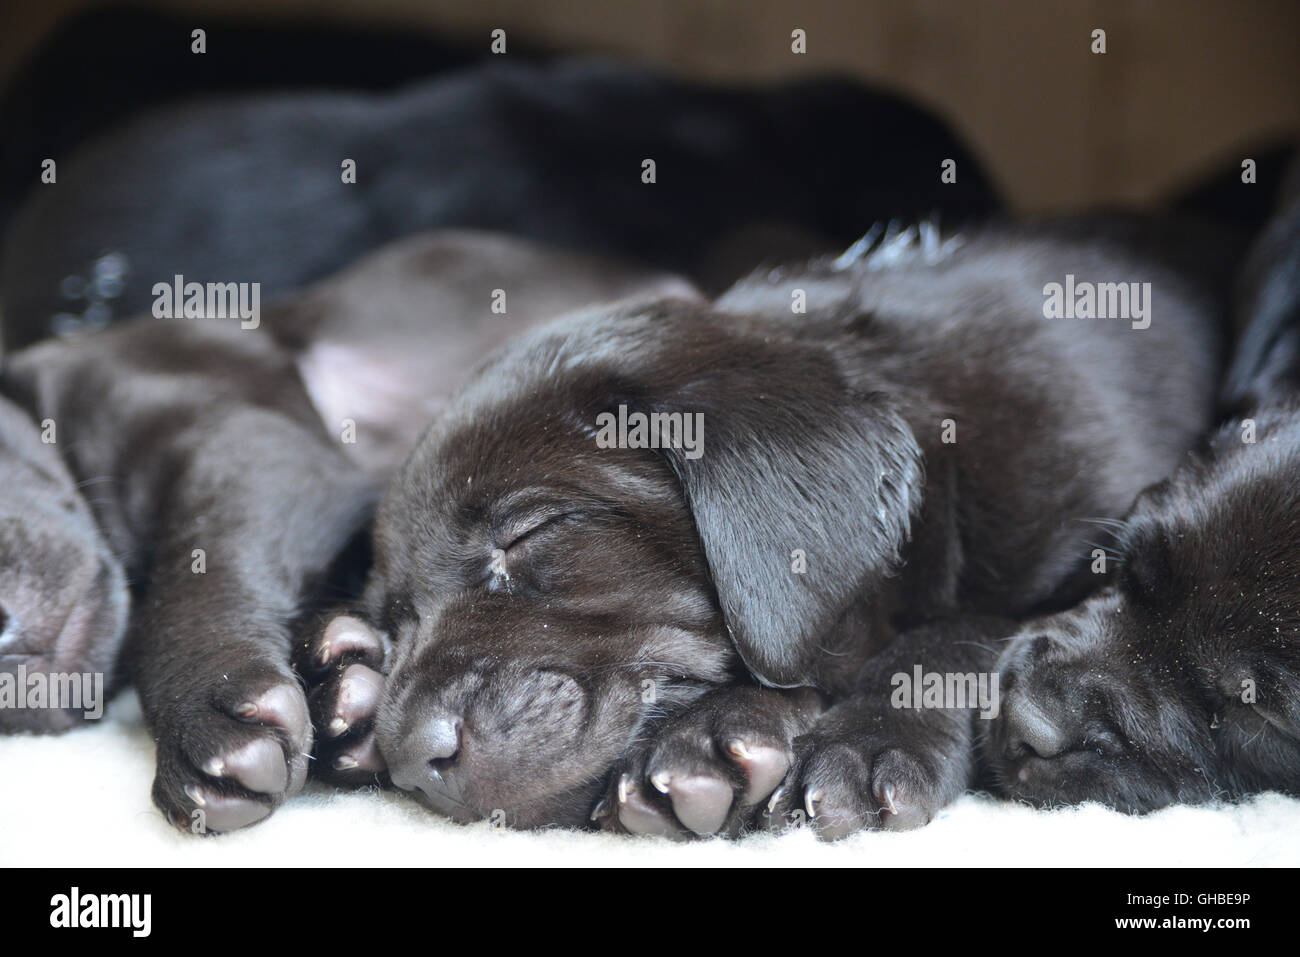 Black Labrador puppies sleeping on decking together in a bundle - Stock Image